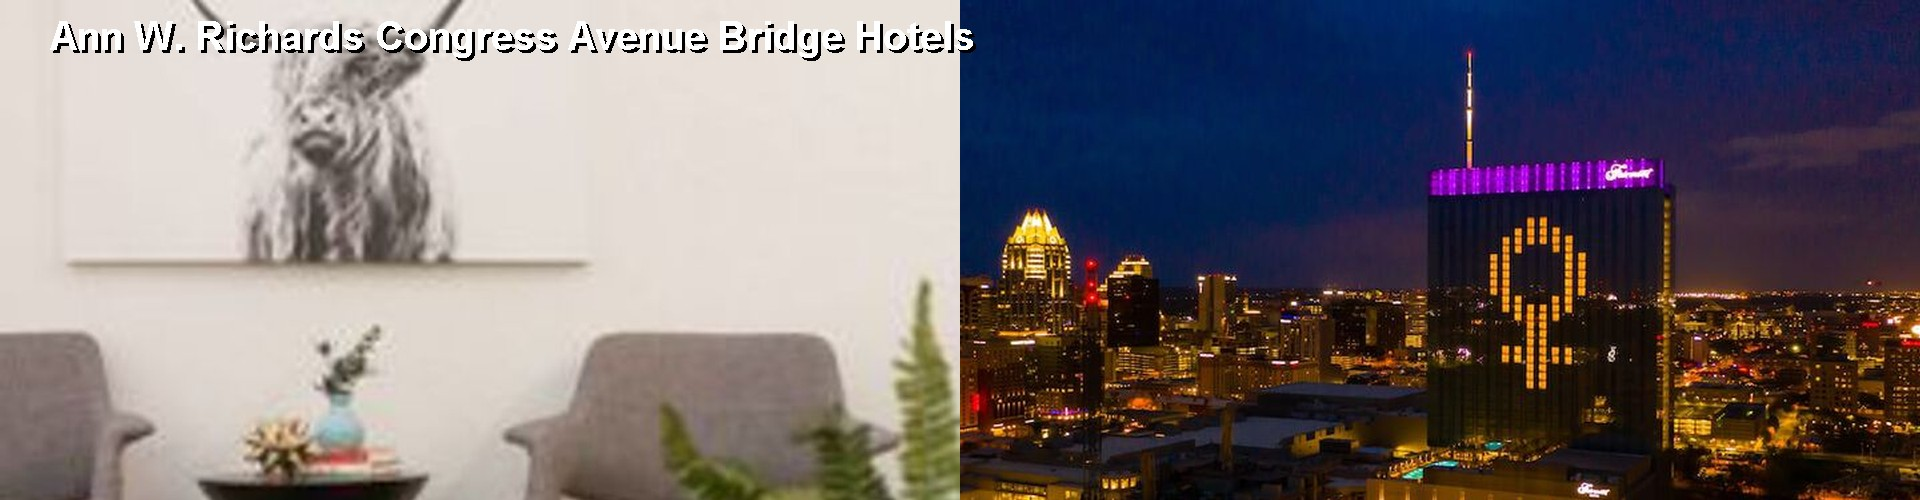 5 Best Hotels near Ann W. Richards Congress Avenue Bridge